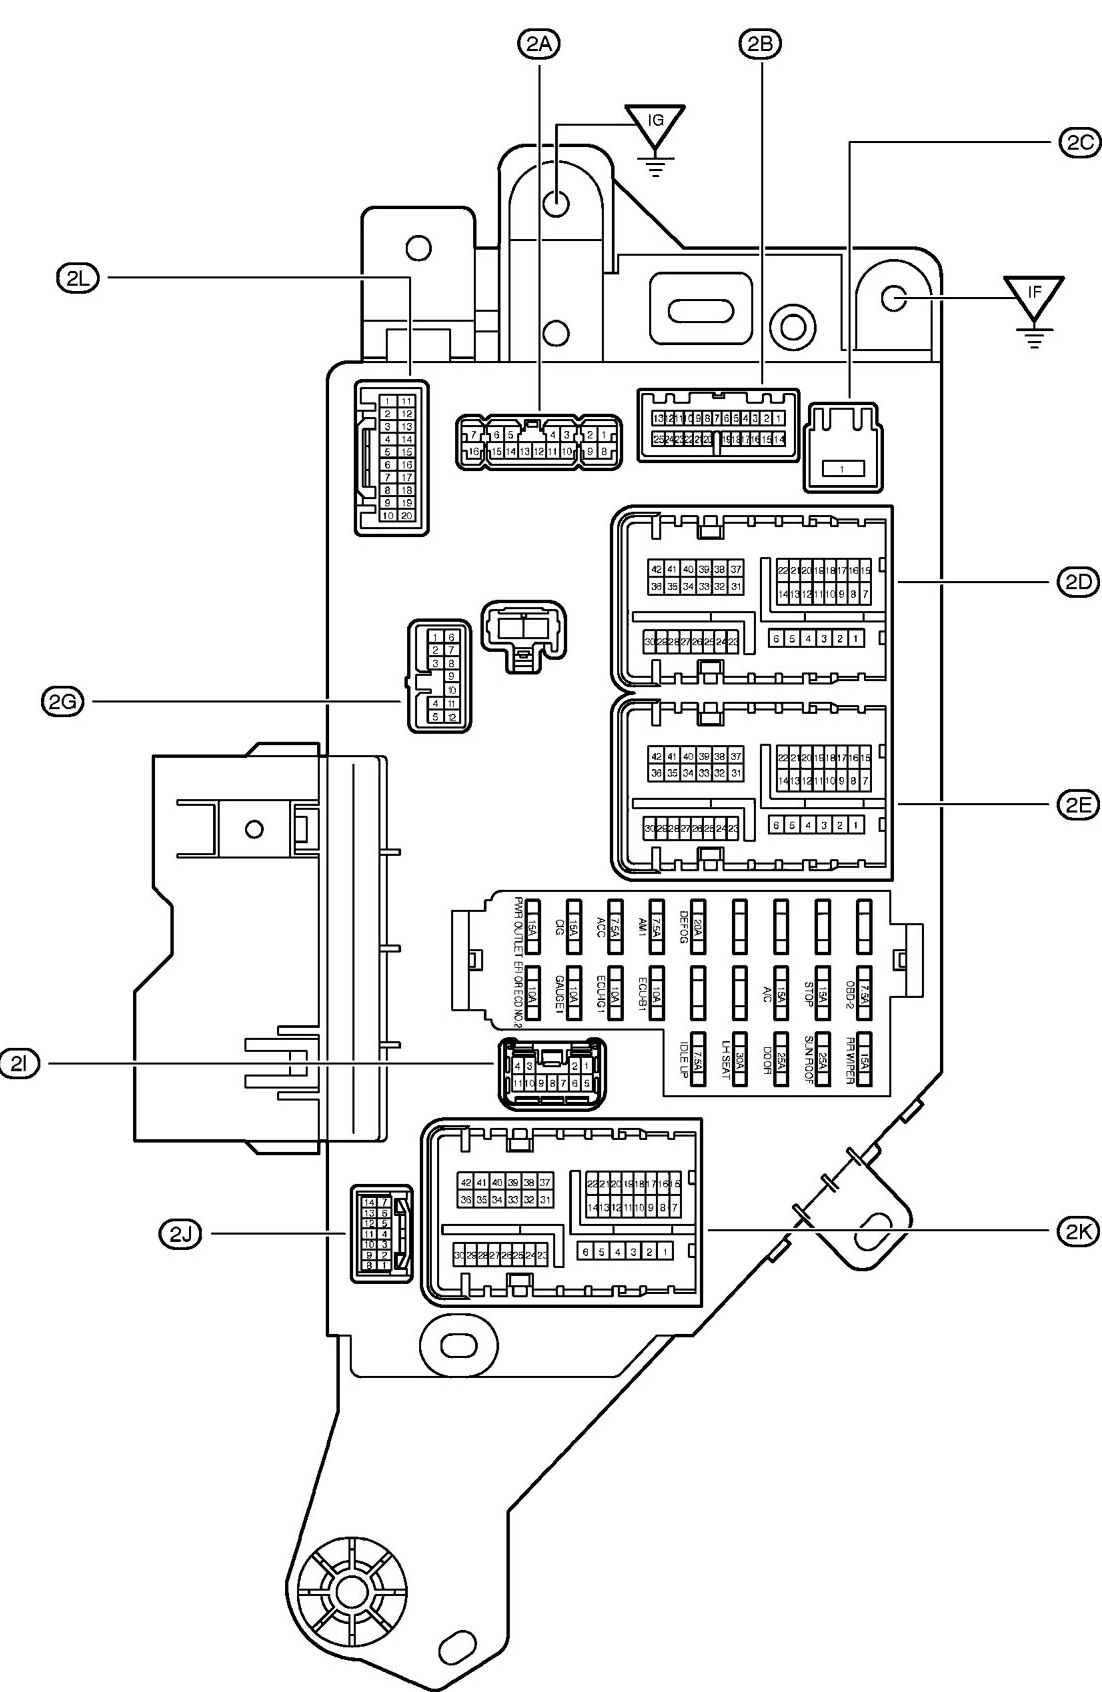 Mitsubishi Eclipse Gs Fuse Box Diagram